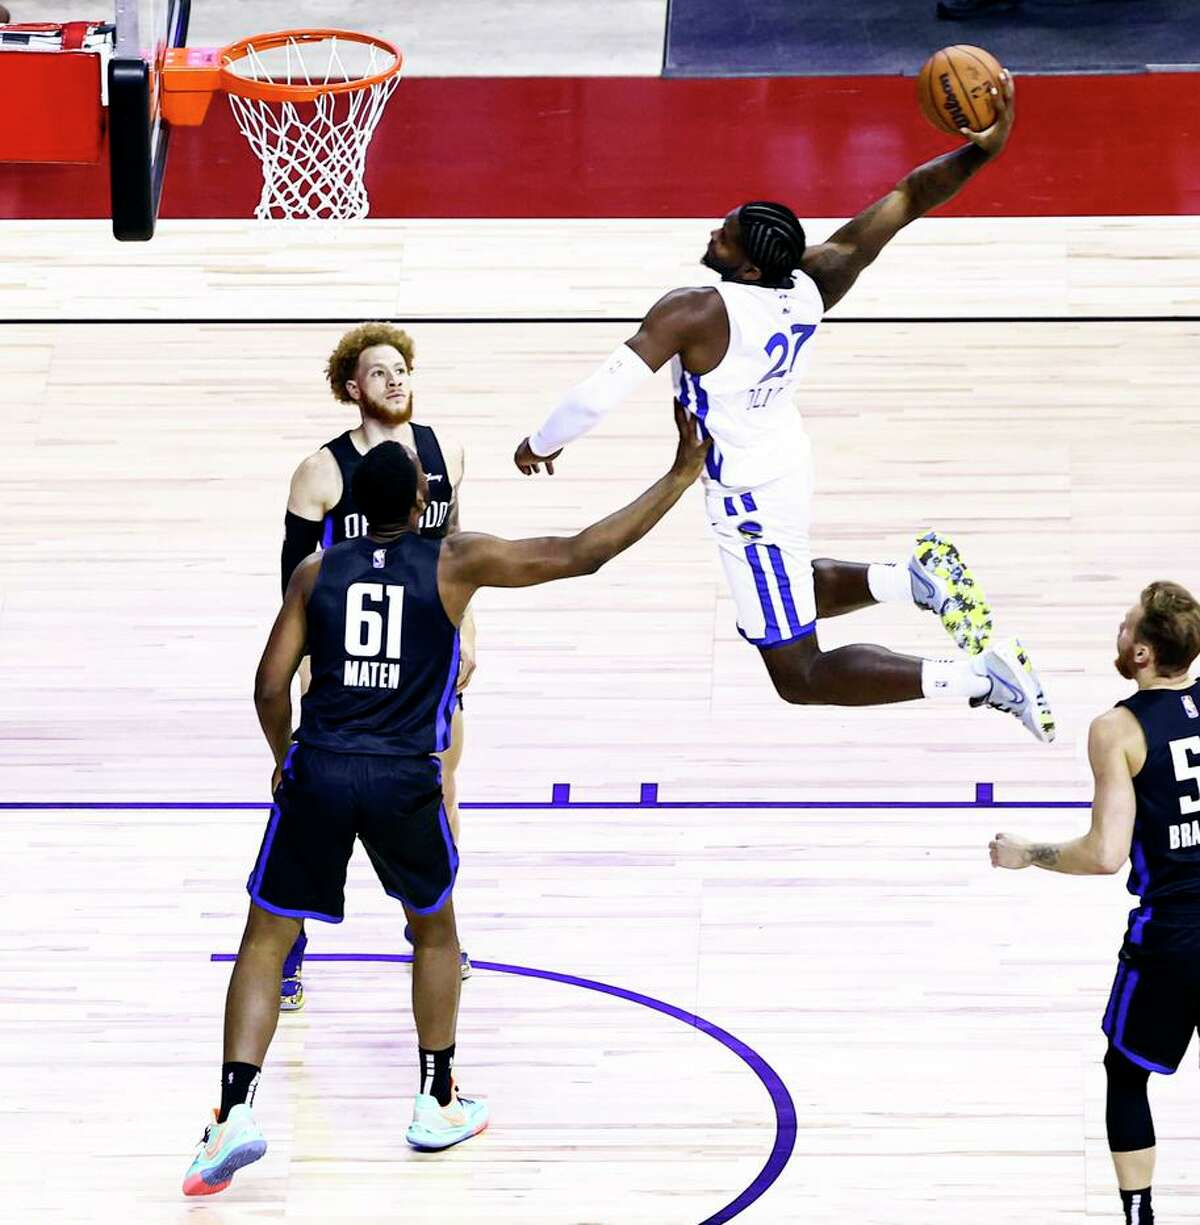 The Warriors' Cameron Oliver leaps for a dunk against the Orlando Magic's Yante Maten (61) and Hassani Gravett.